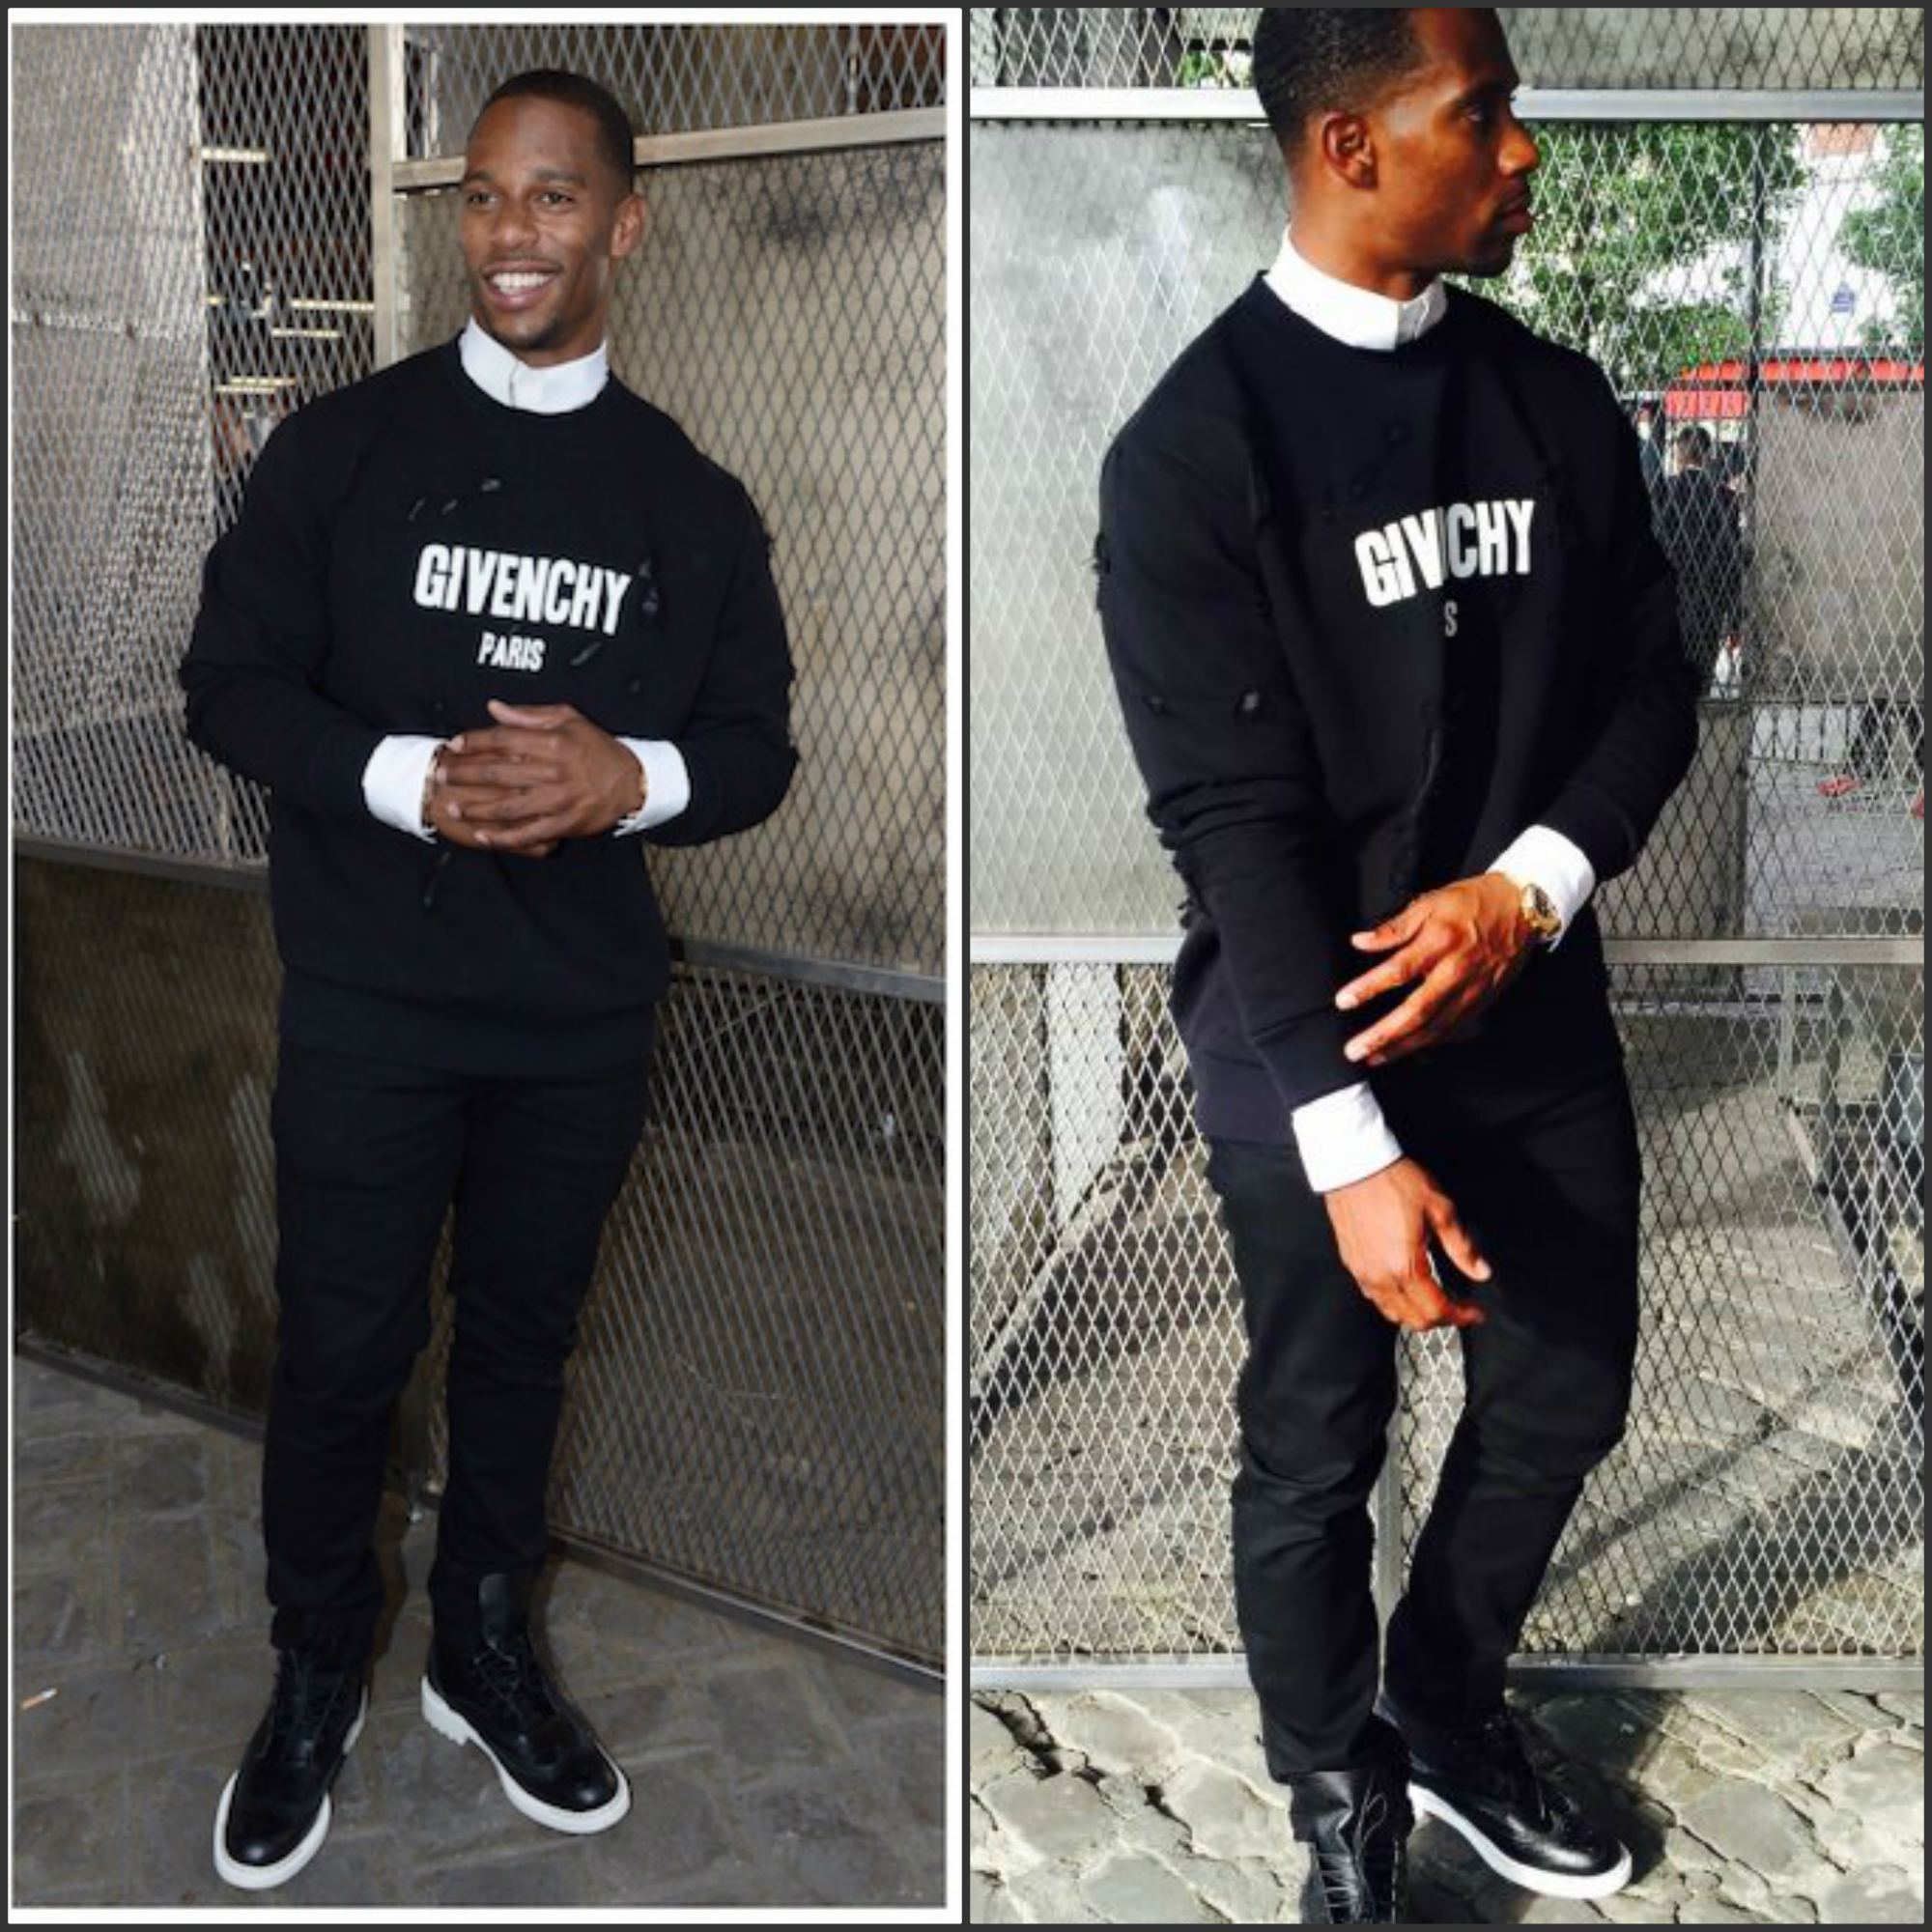 victor-cruz-givenchy-paris